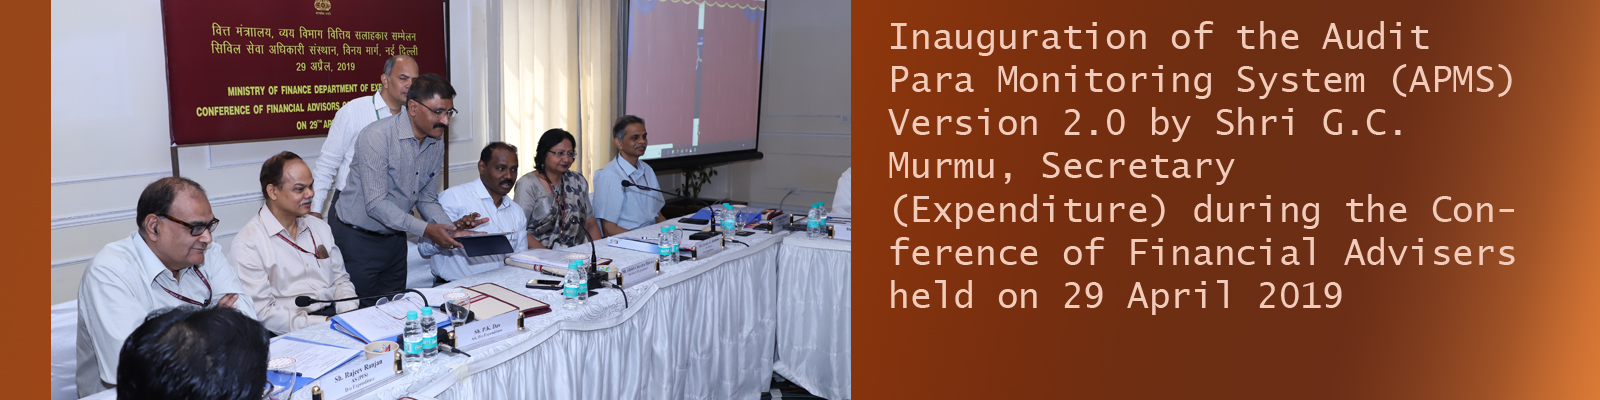 Inauguration of the Audit Para Monitoring System (APMS) Version 2.0 by Shri G.C. Murmu, Secretary (Expenditure) during the Conference of Financial Advisers